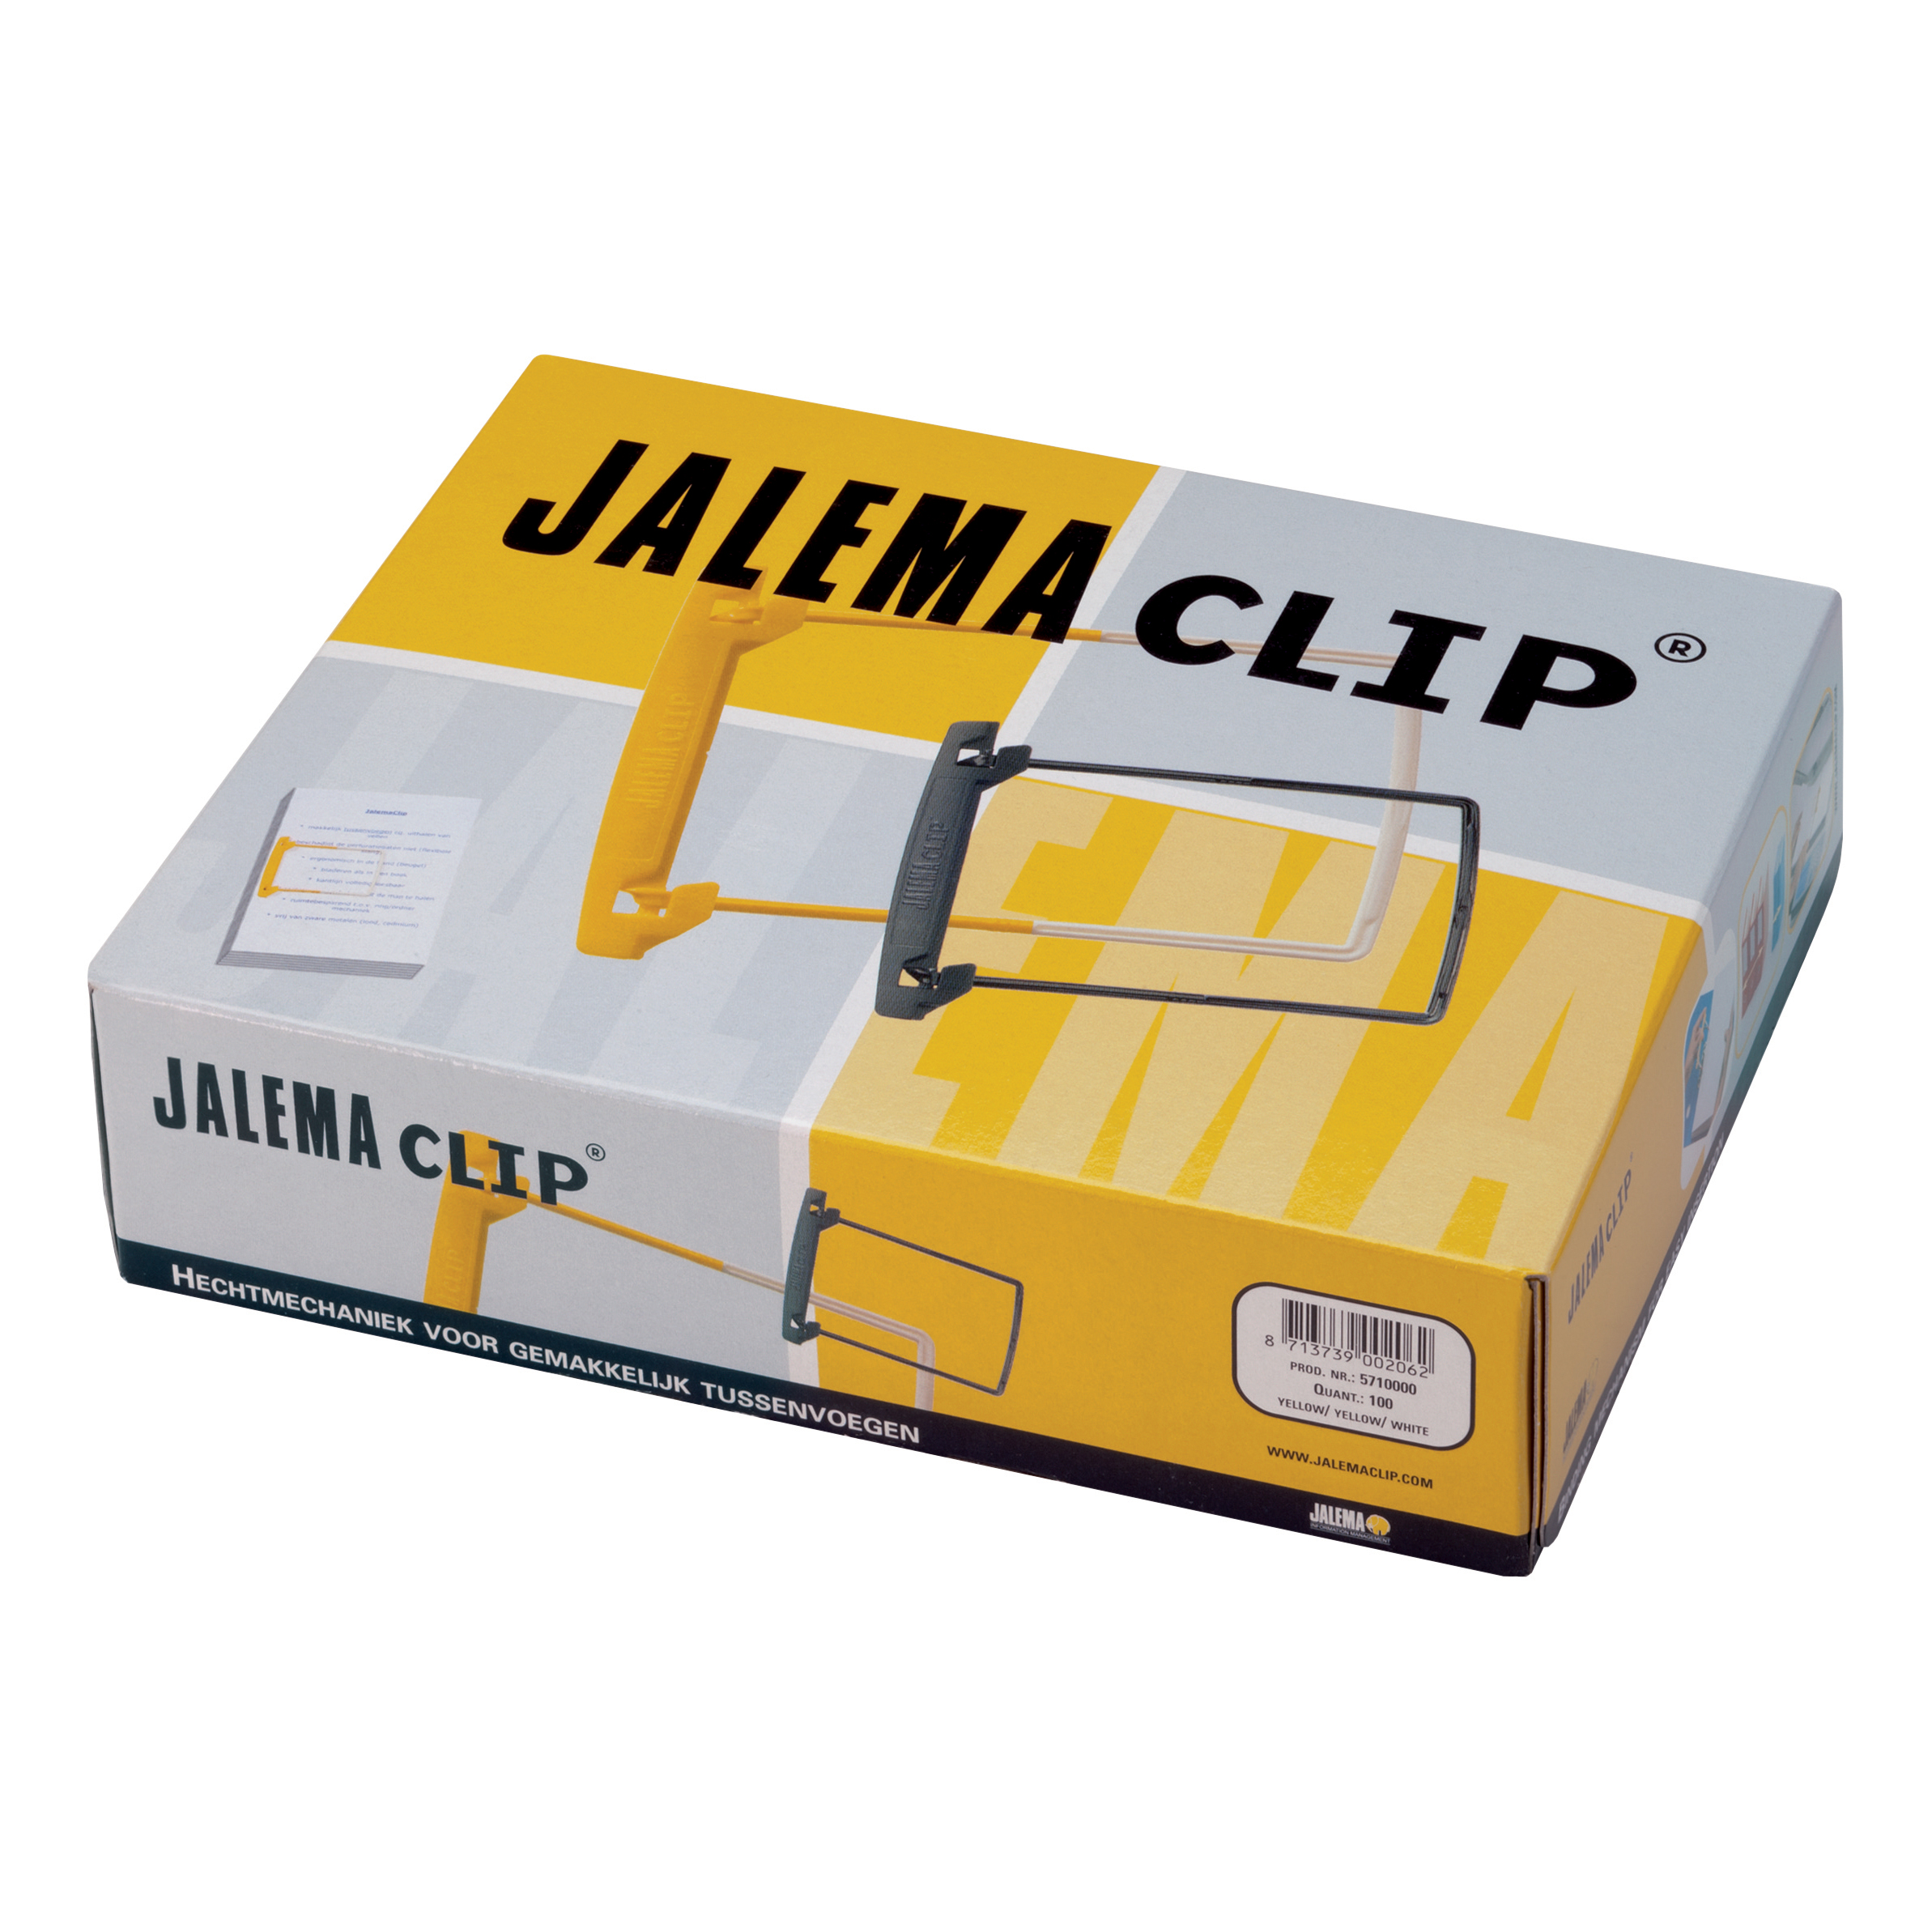 Jalema Filing Clip Yellow/White Ref 5710000 Pack 100